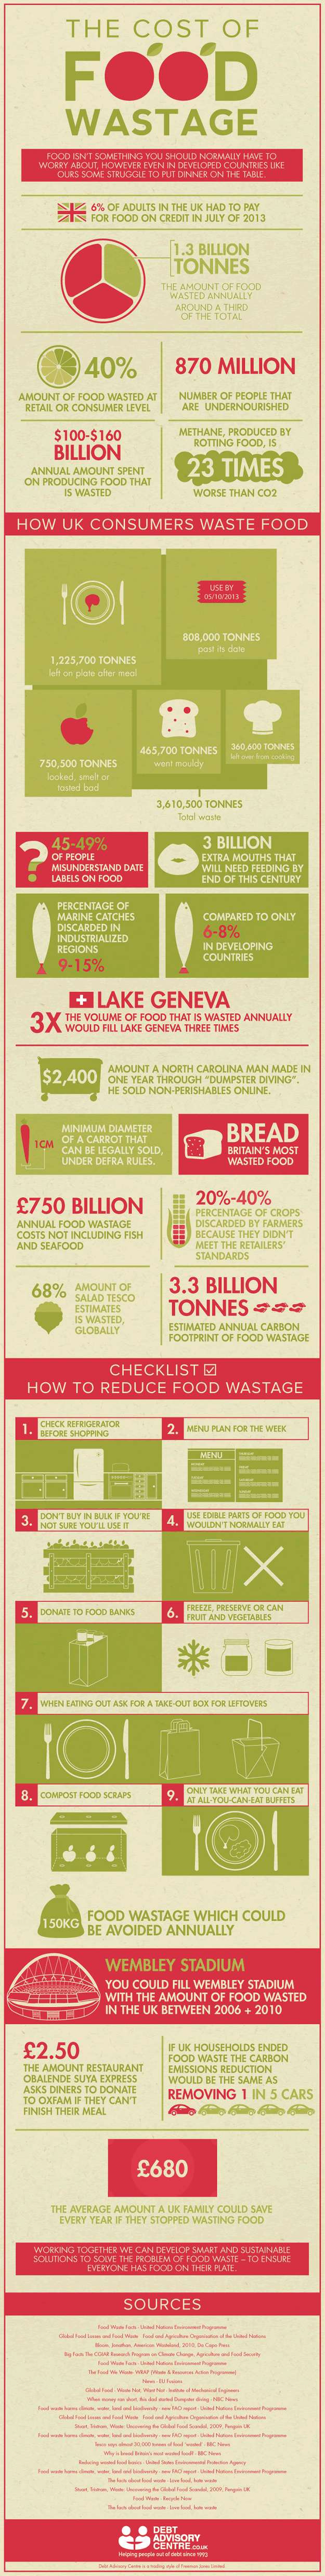 The Cost of Food Wastage